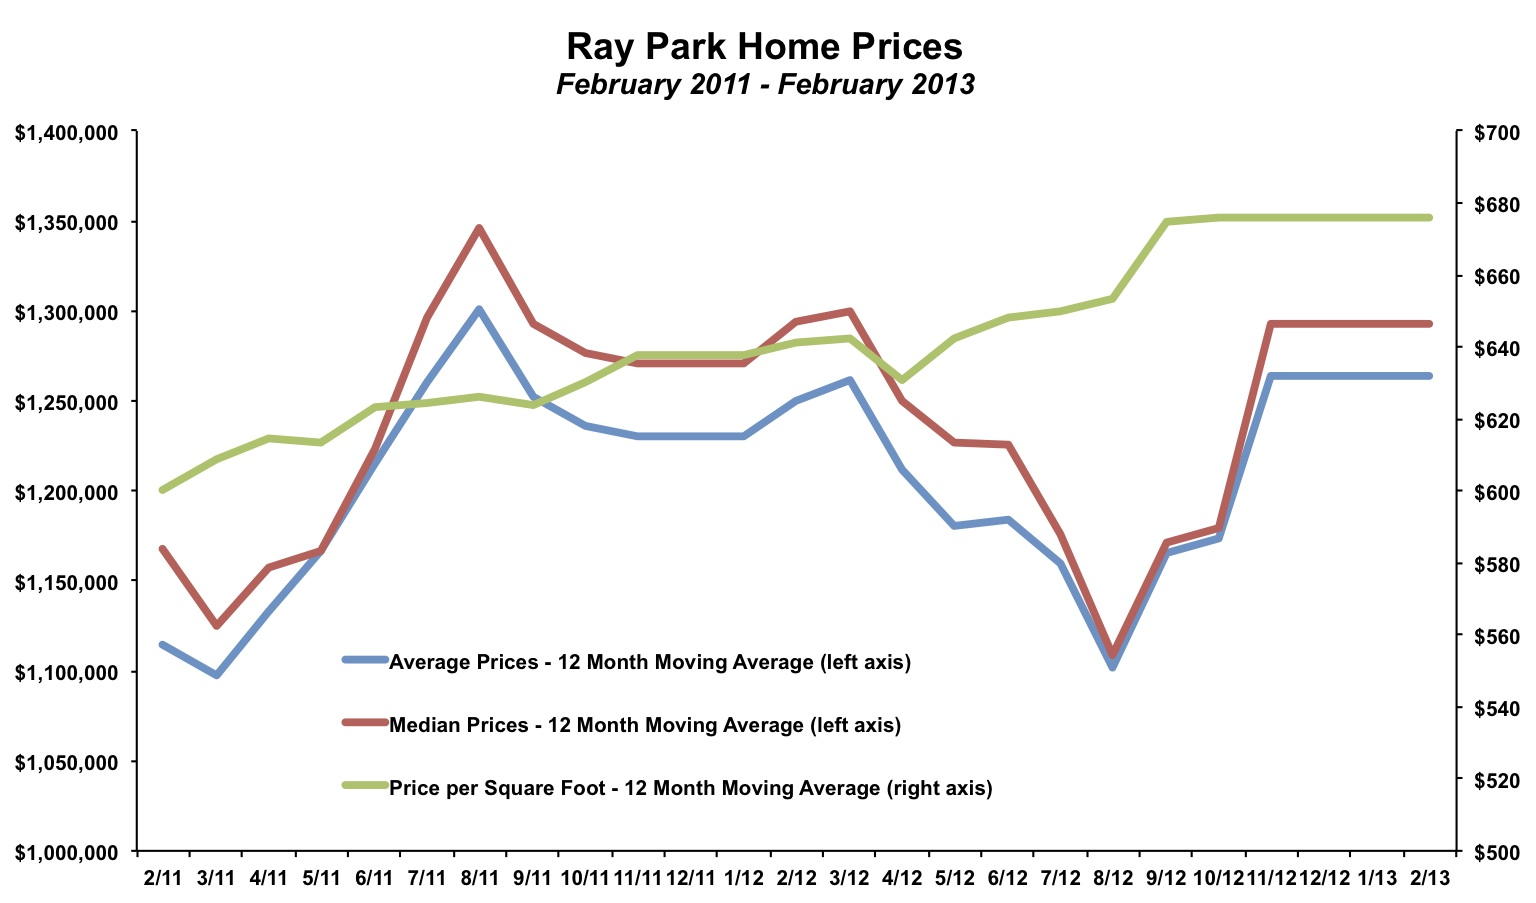 Ray Park Home Prices February 2013